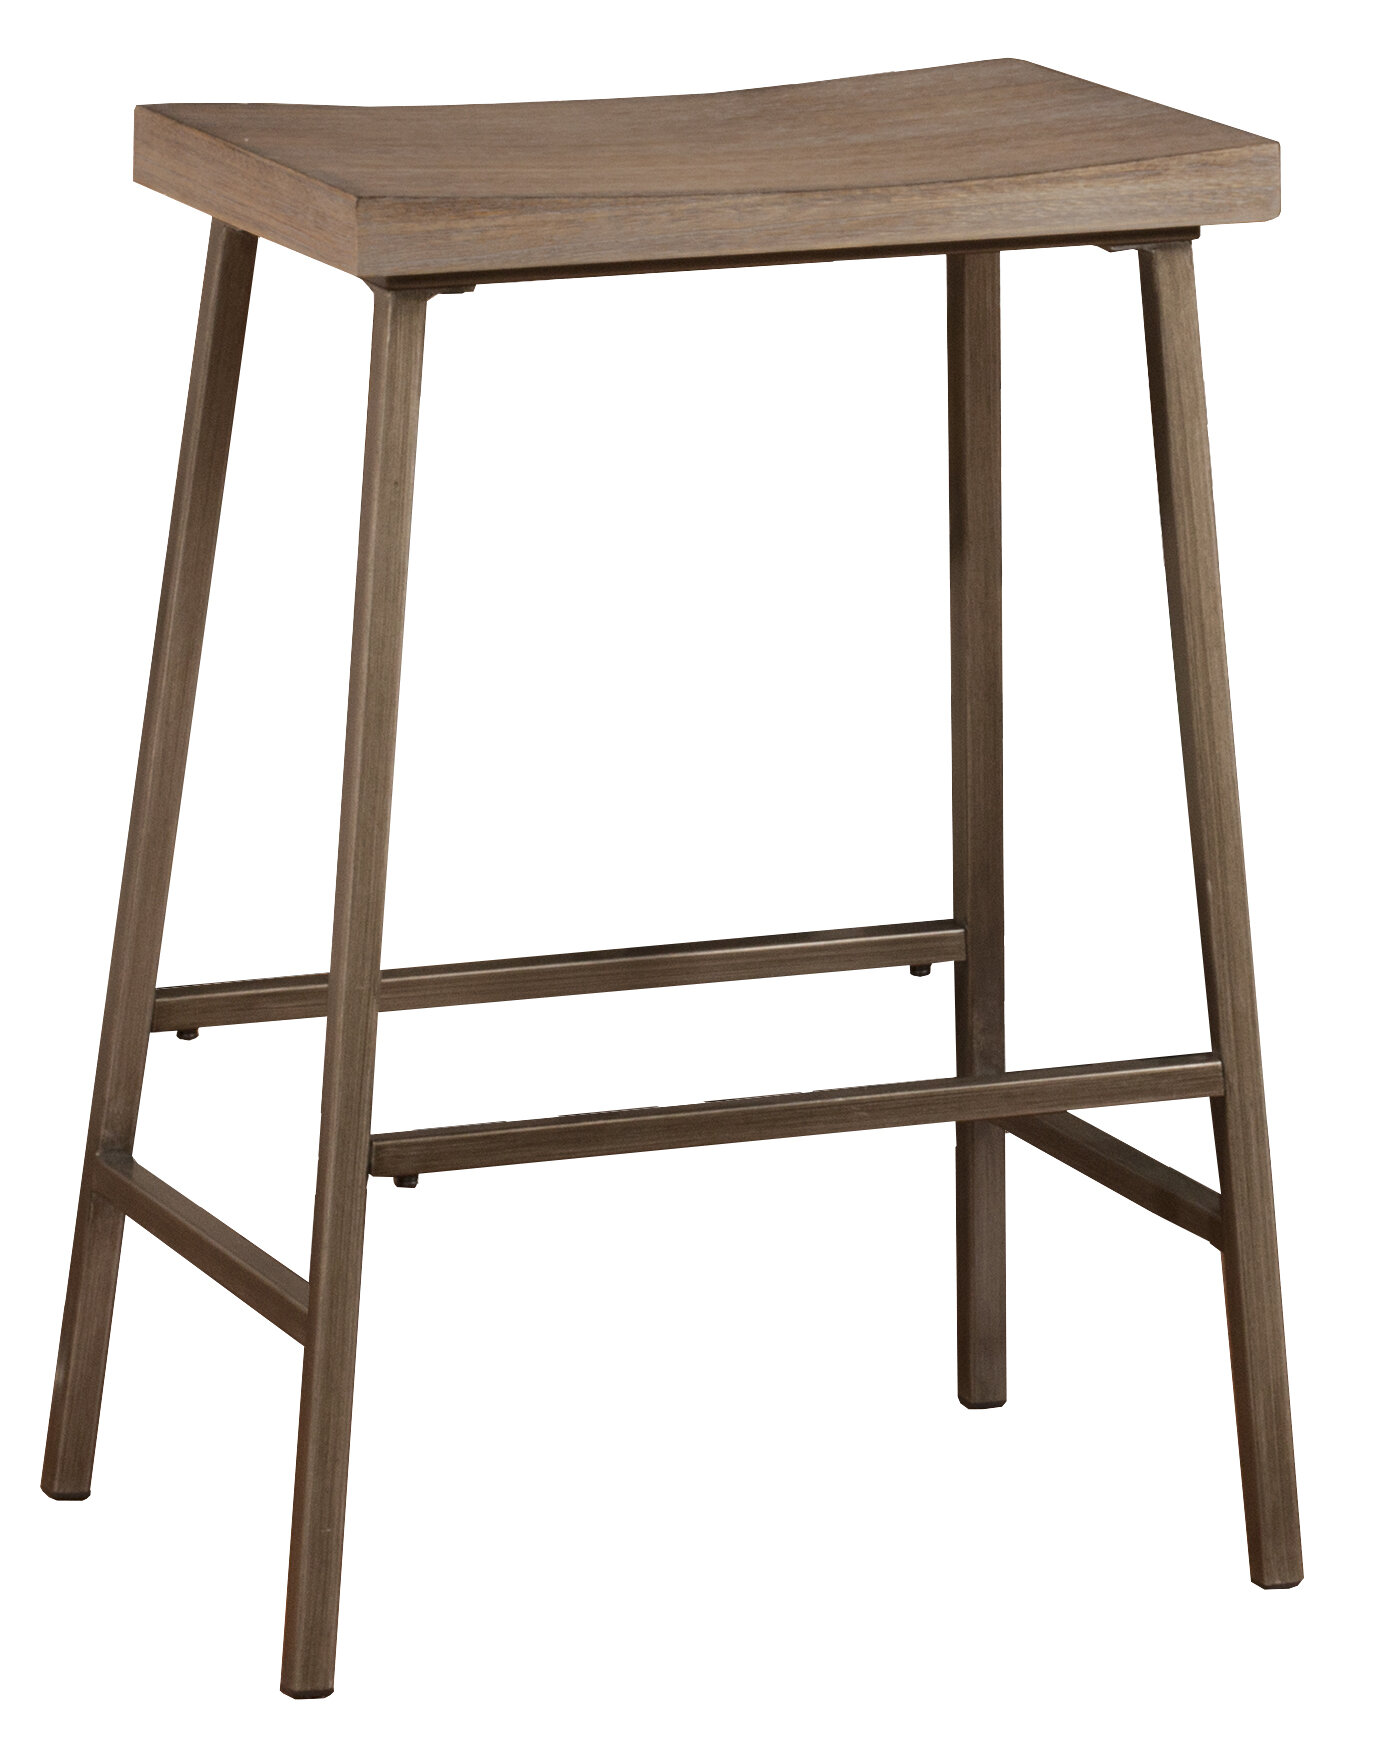 Astonishing August Grove Droitwich Backless 26 Counter Bar Stool Gmtry Best Dining Table And Chair Ideas Images Gmtryco